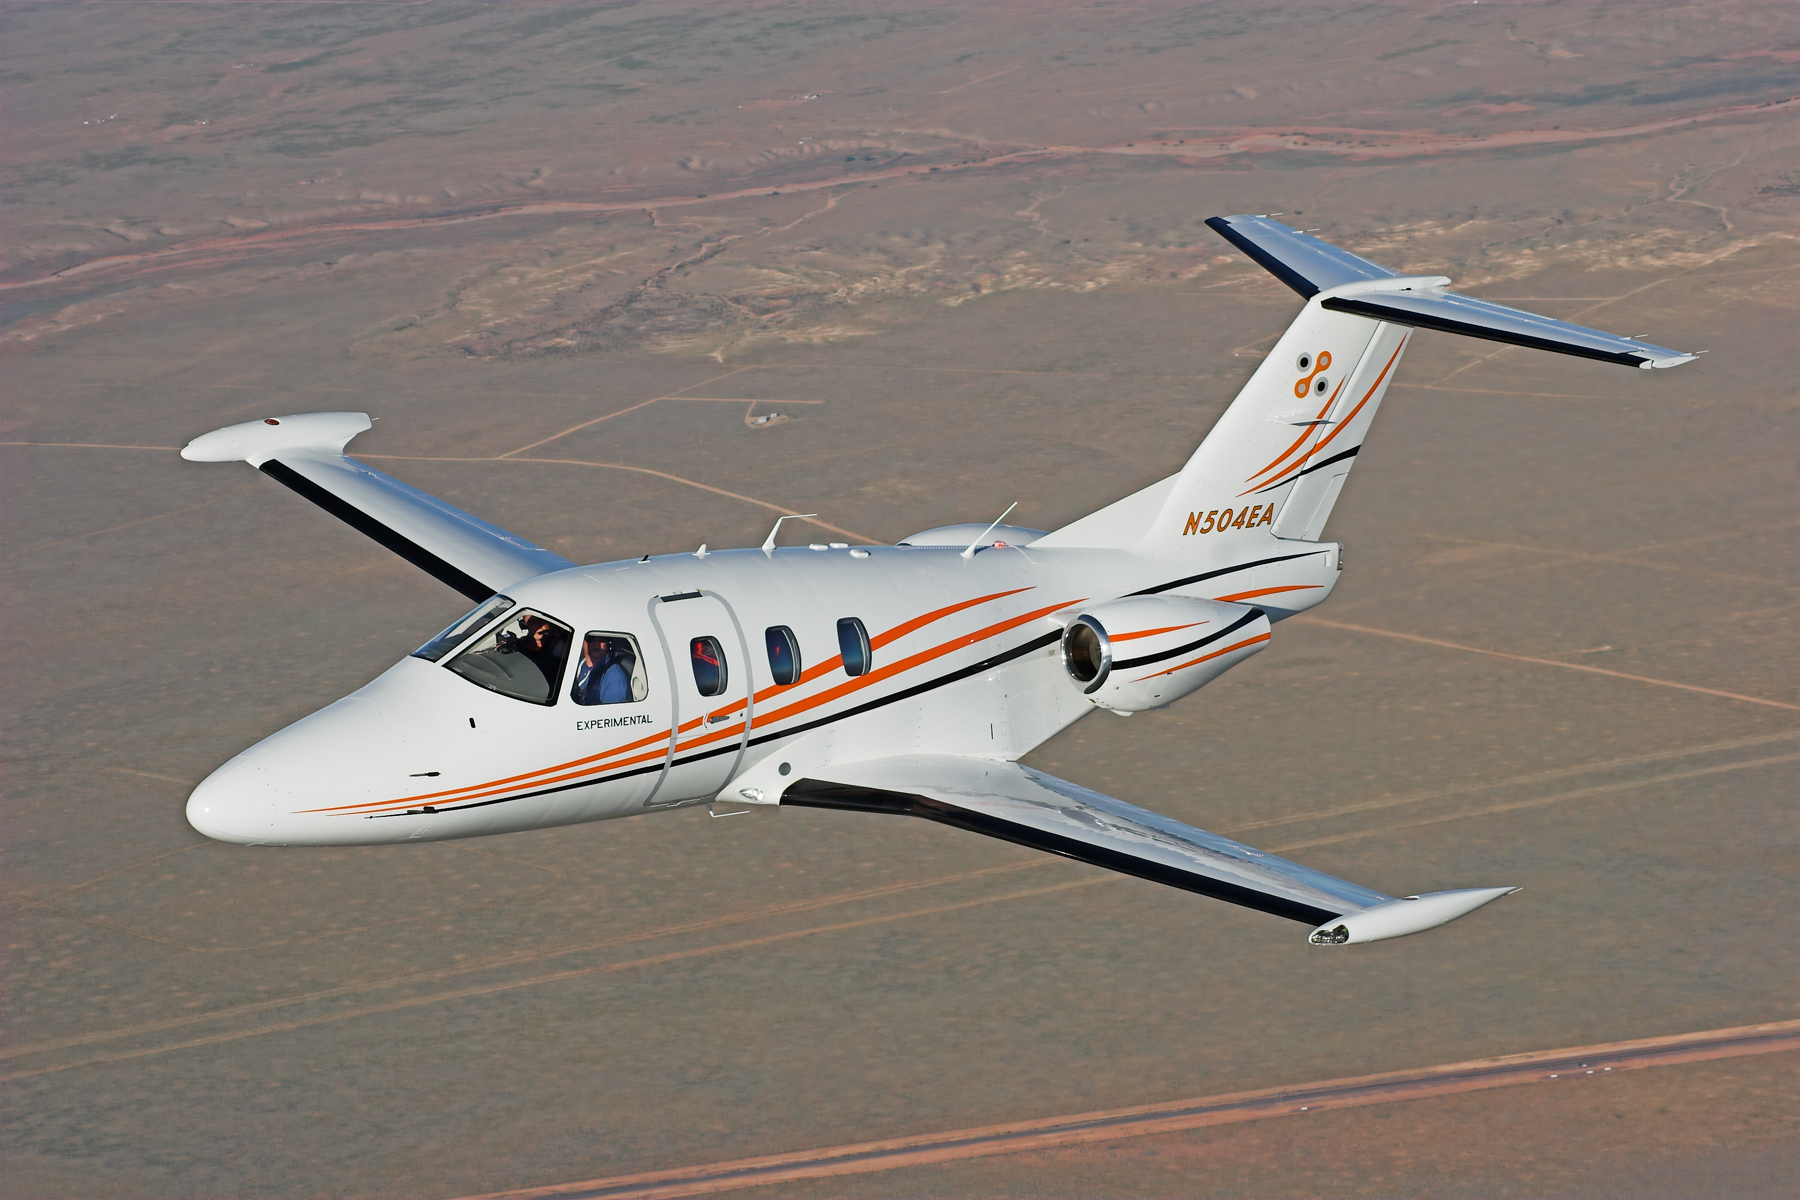 Private Jet of the Day: Eclipse 500 Eclipse Jet